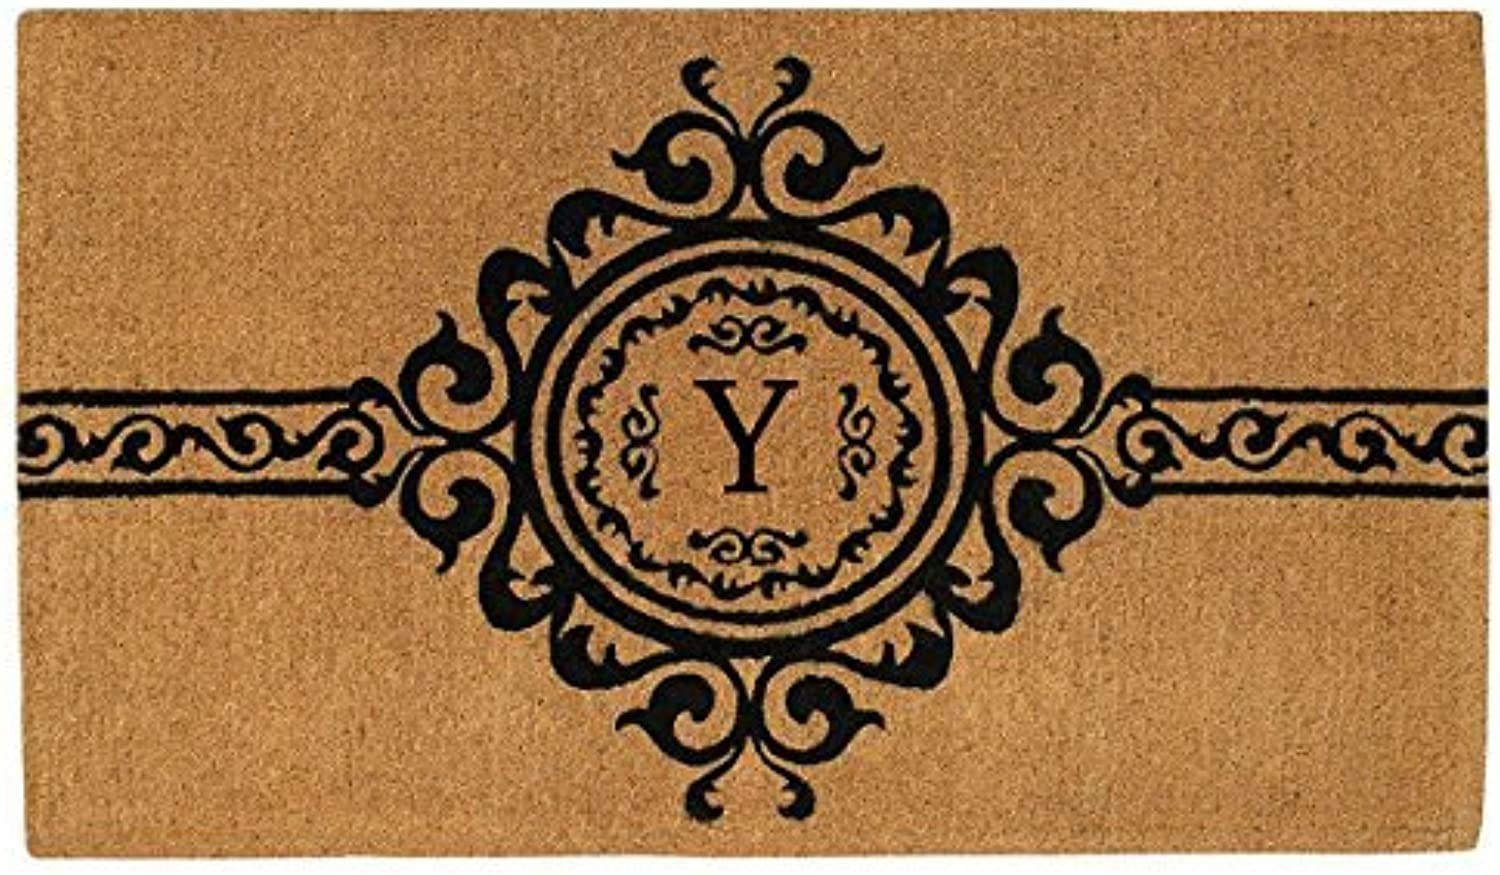 Home & More 180071830Y Garbo Extra-Thick Doormat, 18  x 30  x 1.50 , Monogrammed Letter Y, Natural Black